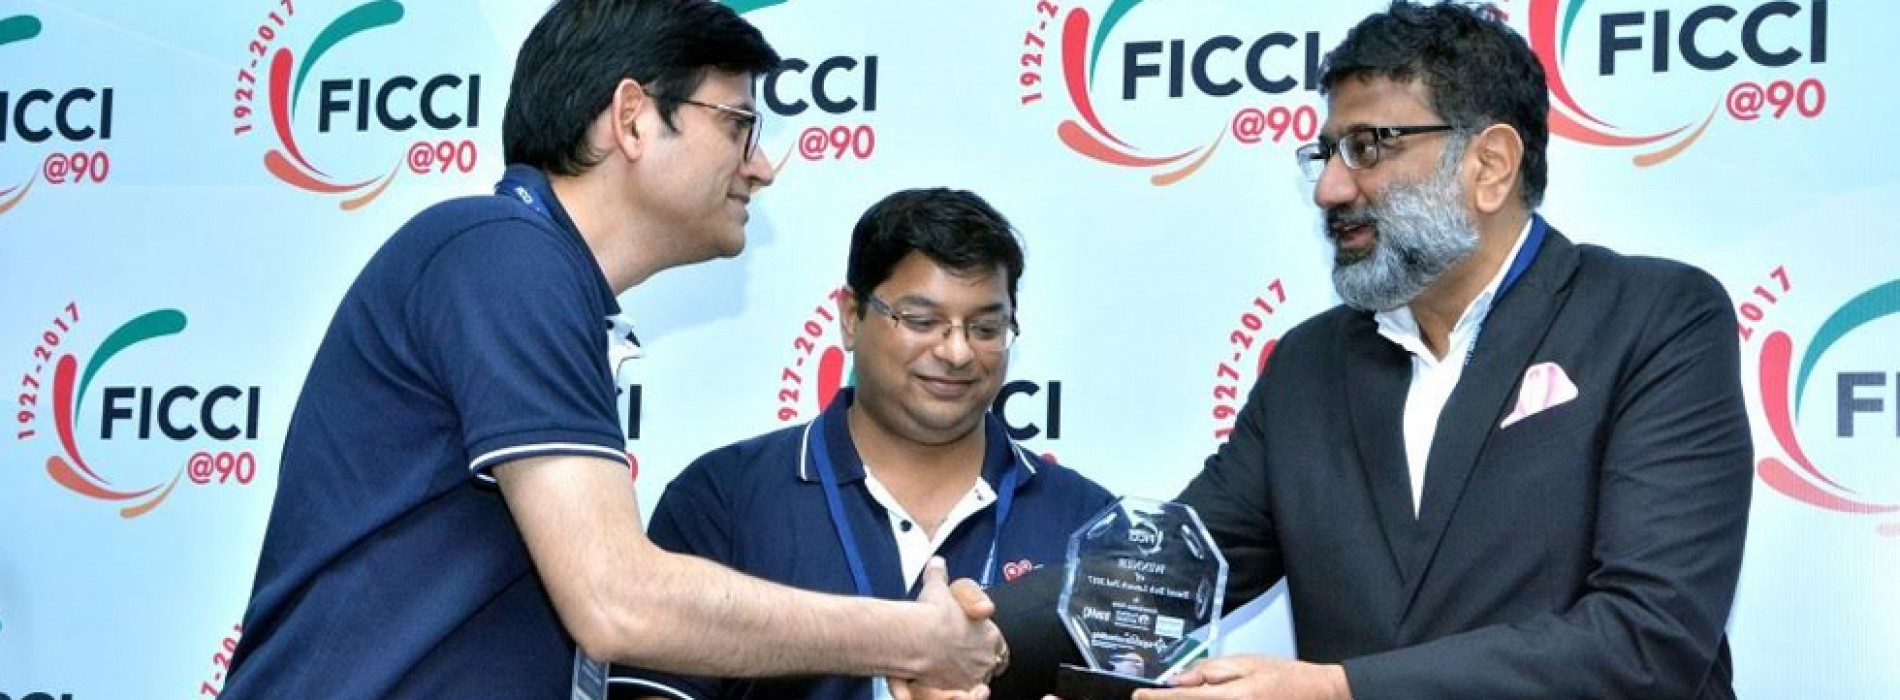 DistancesBetween.com wins People's Choice Award at FICCI Travel Tech Launchpad 2017